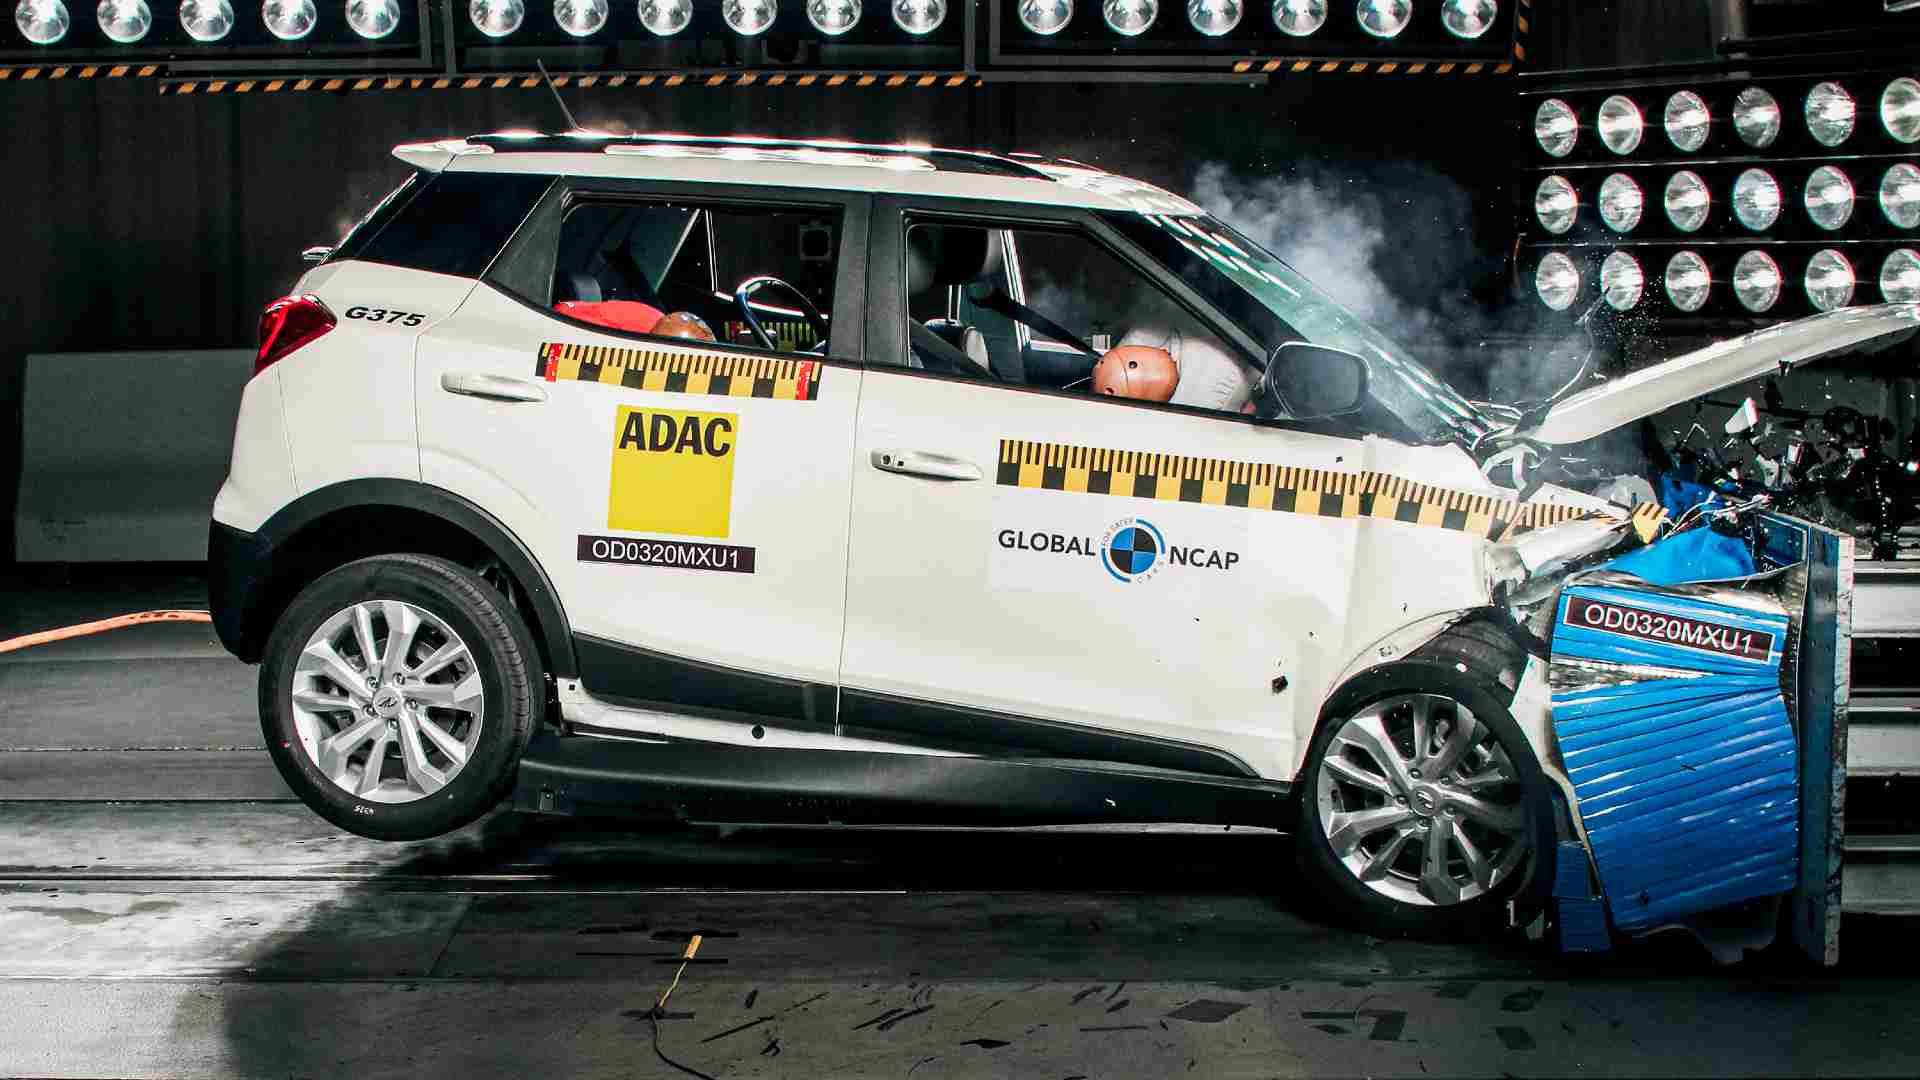 The Mahindra XUV300 has registered the highest adult occupant protection score for any made-in-India model tested by Global NCAP till date. Image: Global NCAP